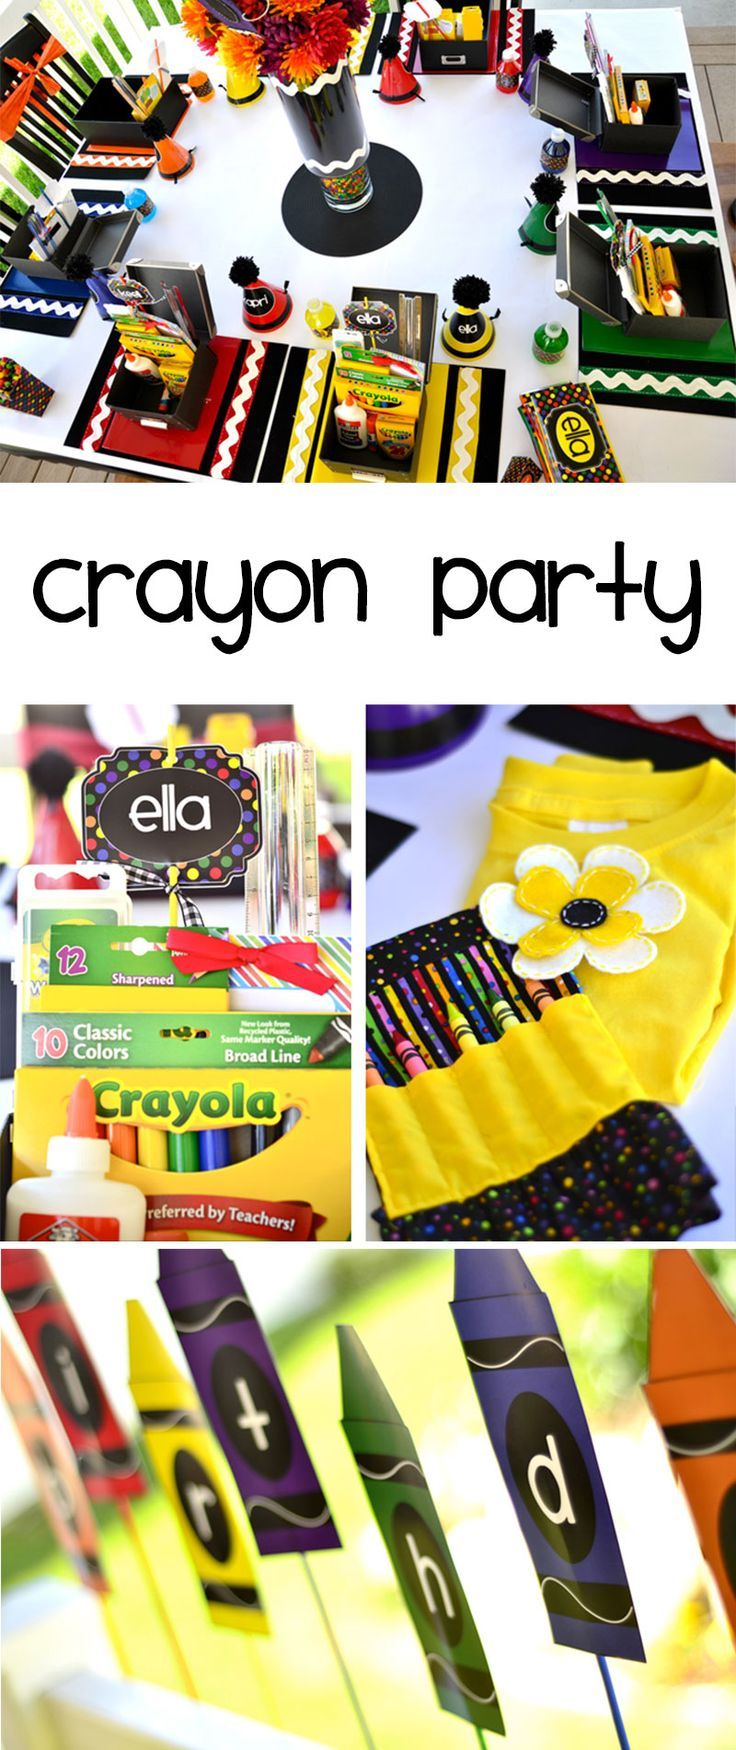 Color crew printables - I Diy Crayon Birthday Party By Lindi Haws Of Love The Day With Printables A Crayon Cake Party Favors And Lots Of Crayon Party Activities